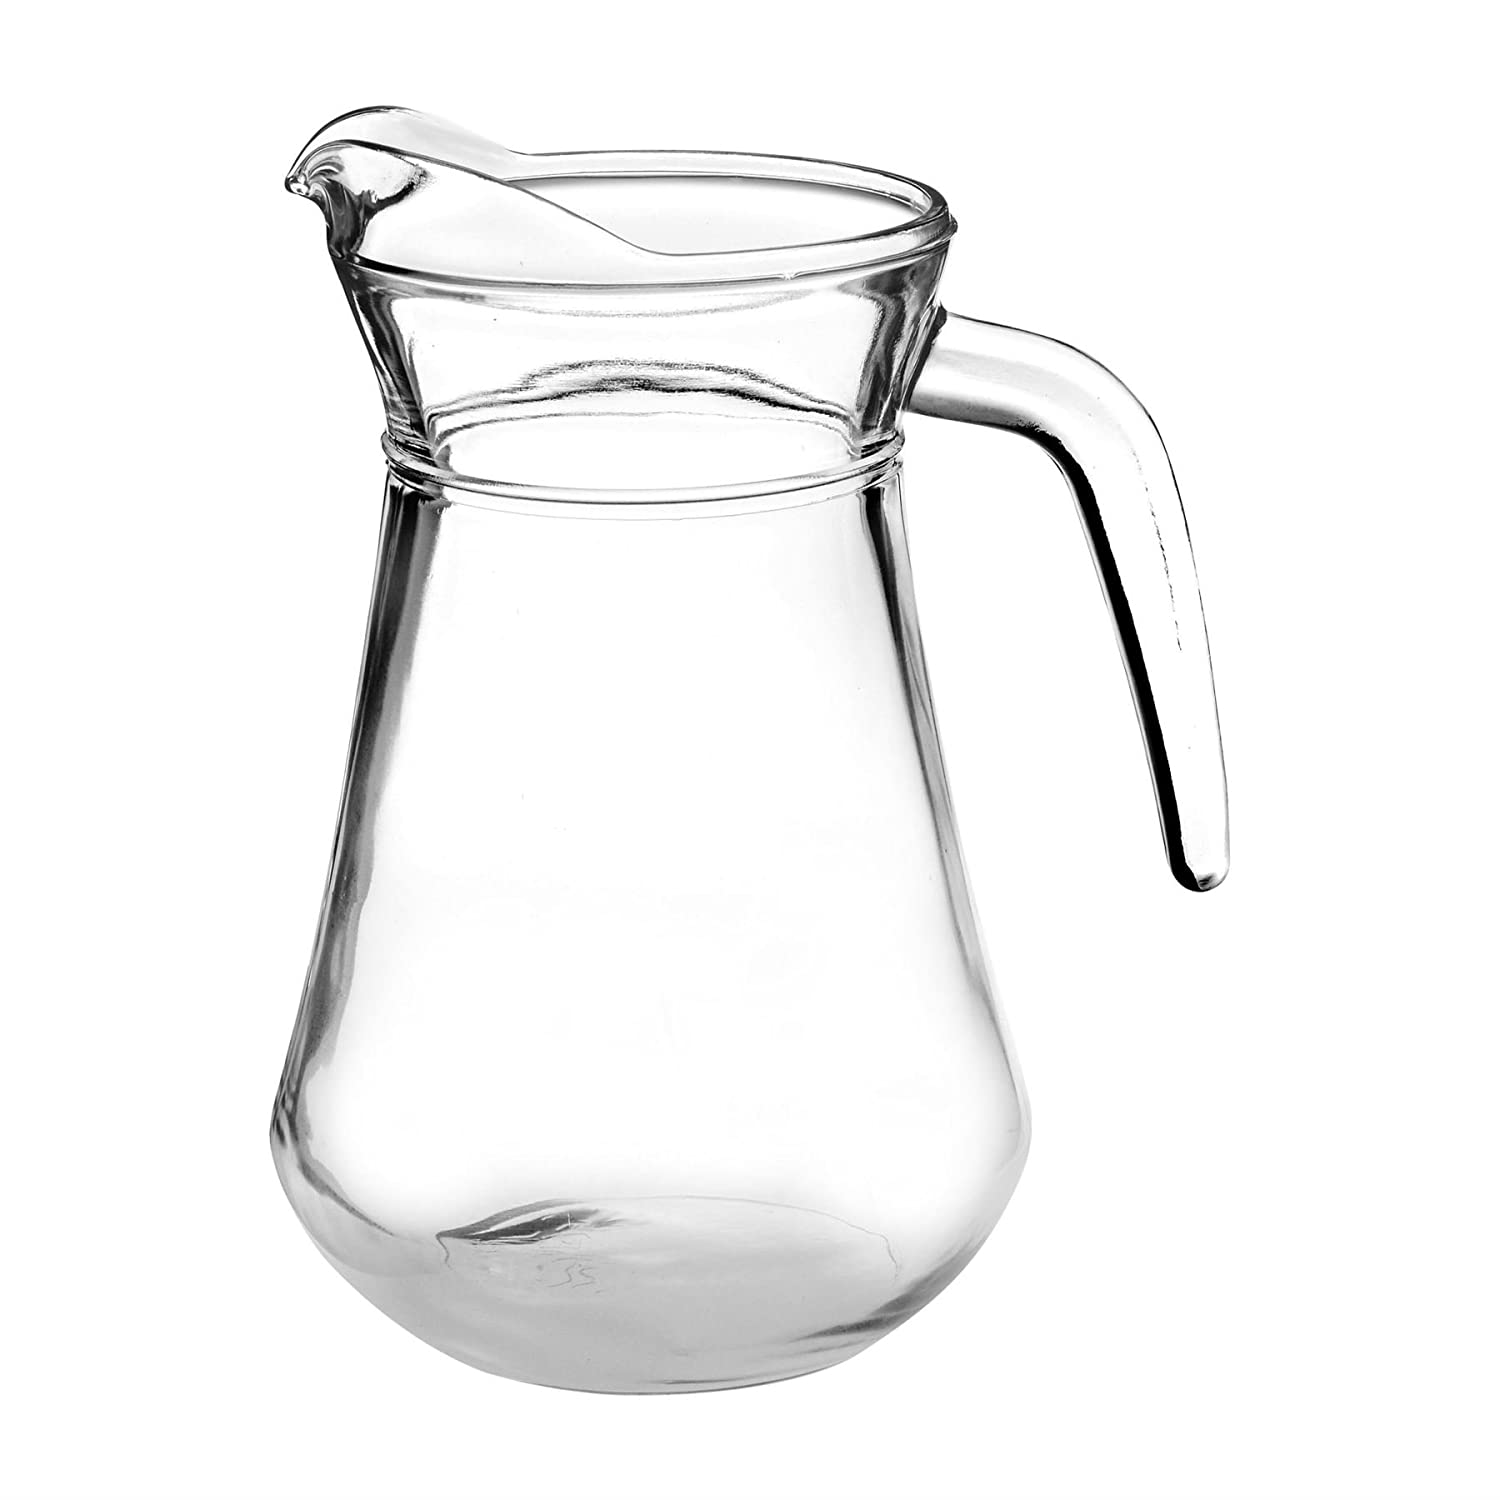 Argon Tableware 'Brocca' Glass Water / Cocktail / Pitcher Jug - 1480ml (52oz)